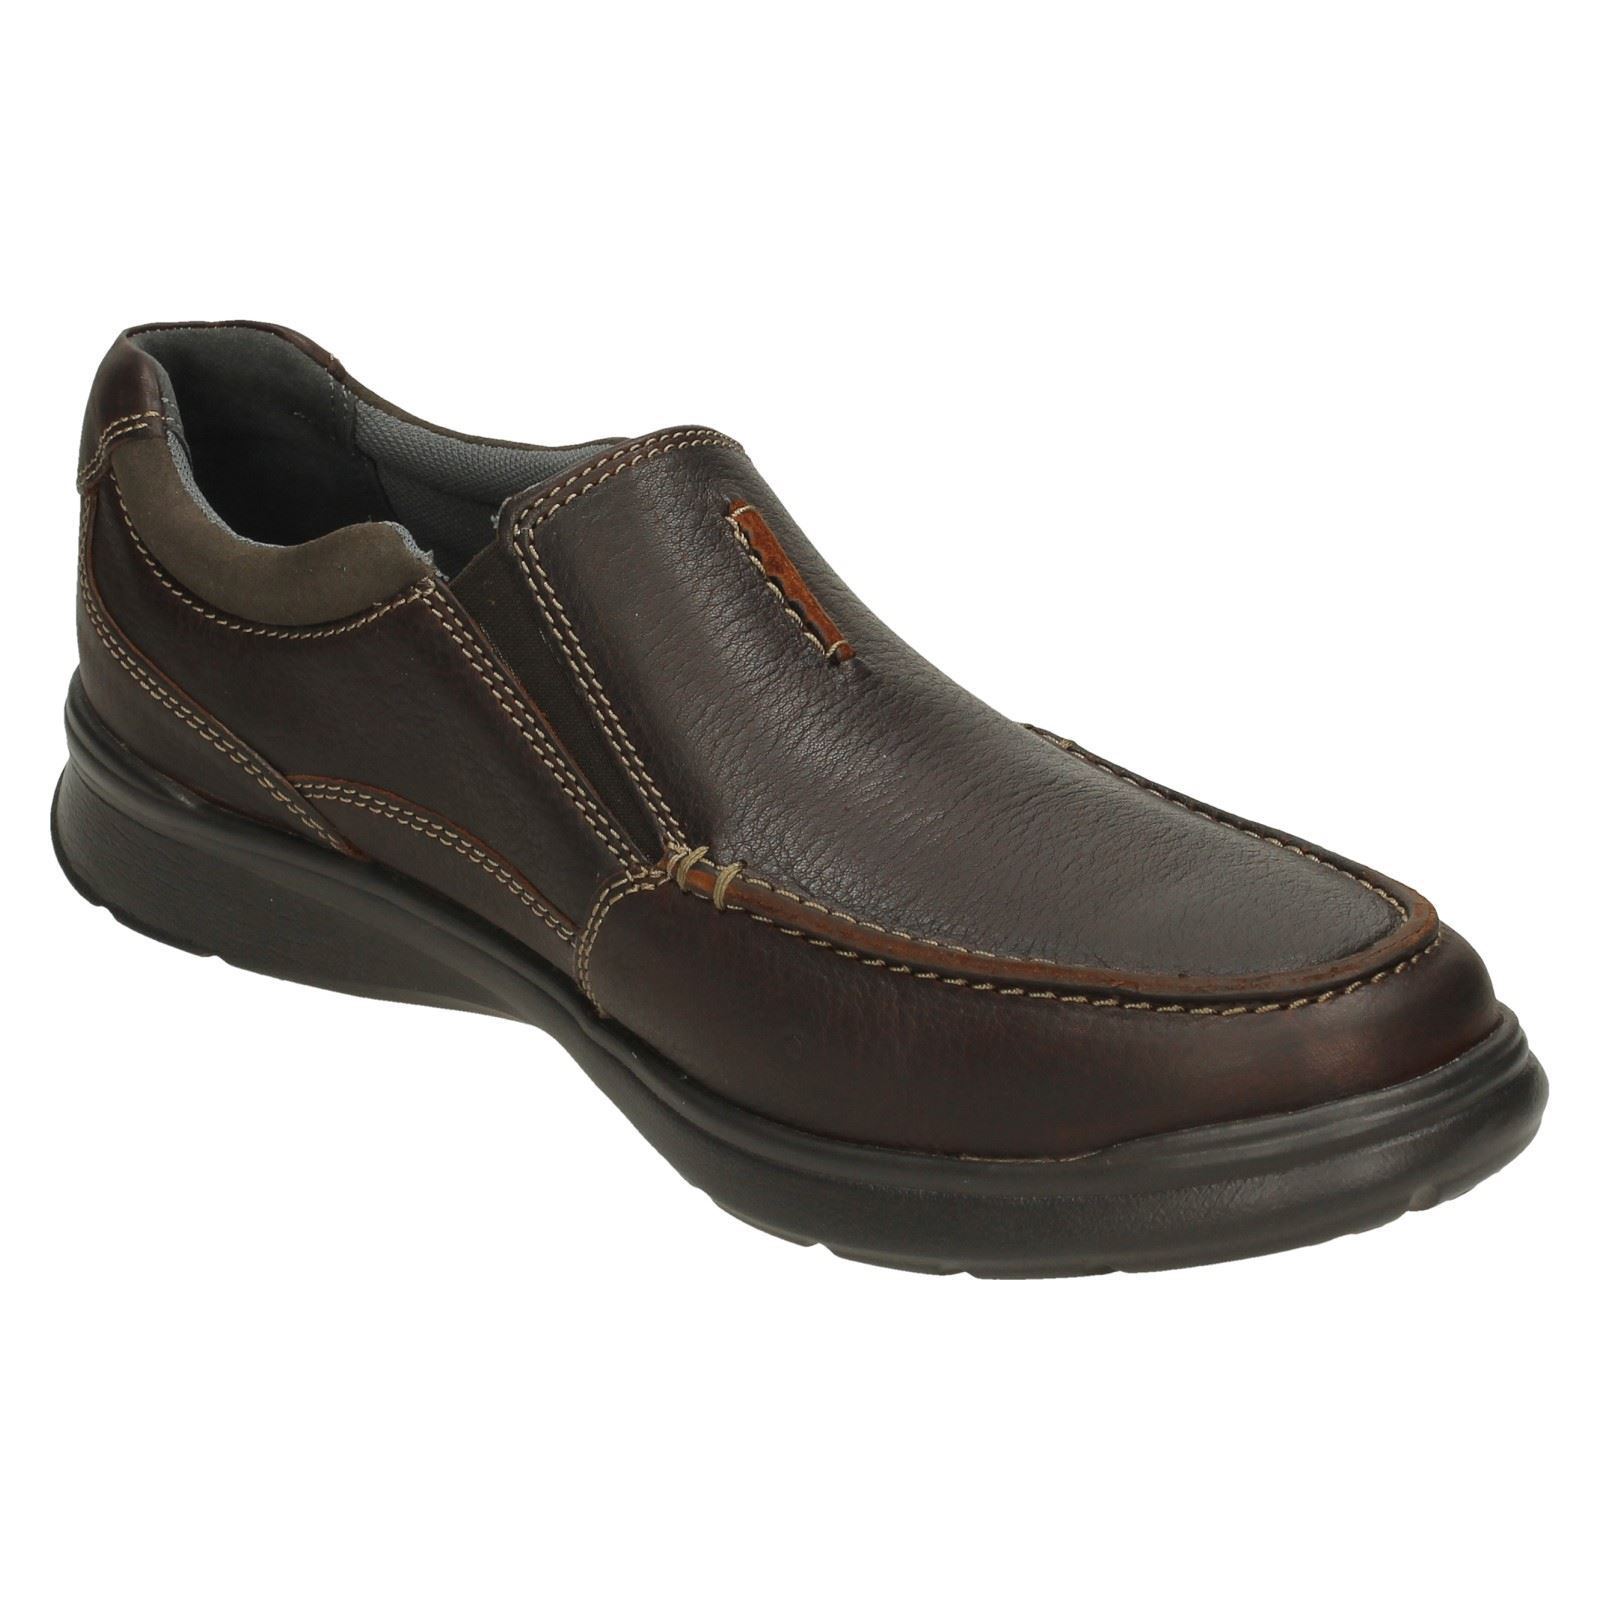 Clarks Uomo Clarks  Cotrell Free Casual Schuhes 04ff0a